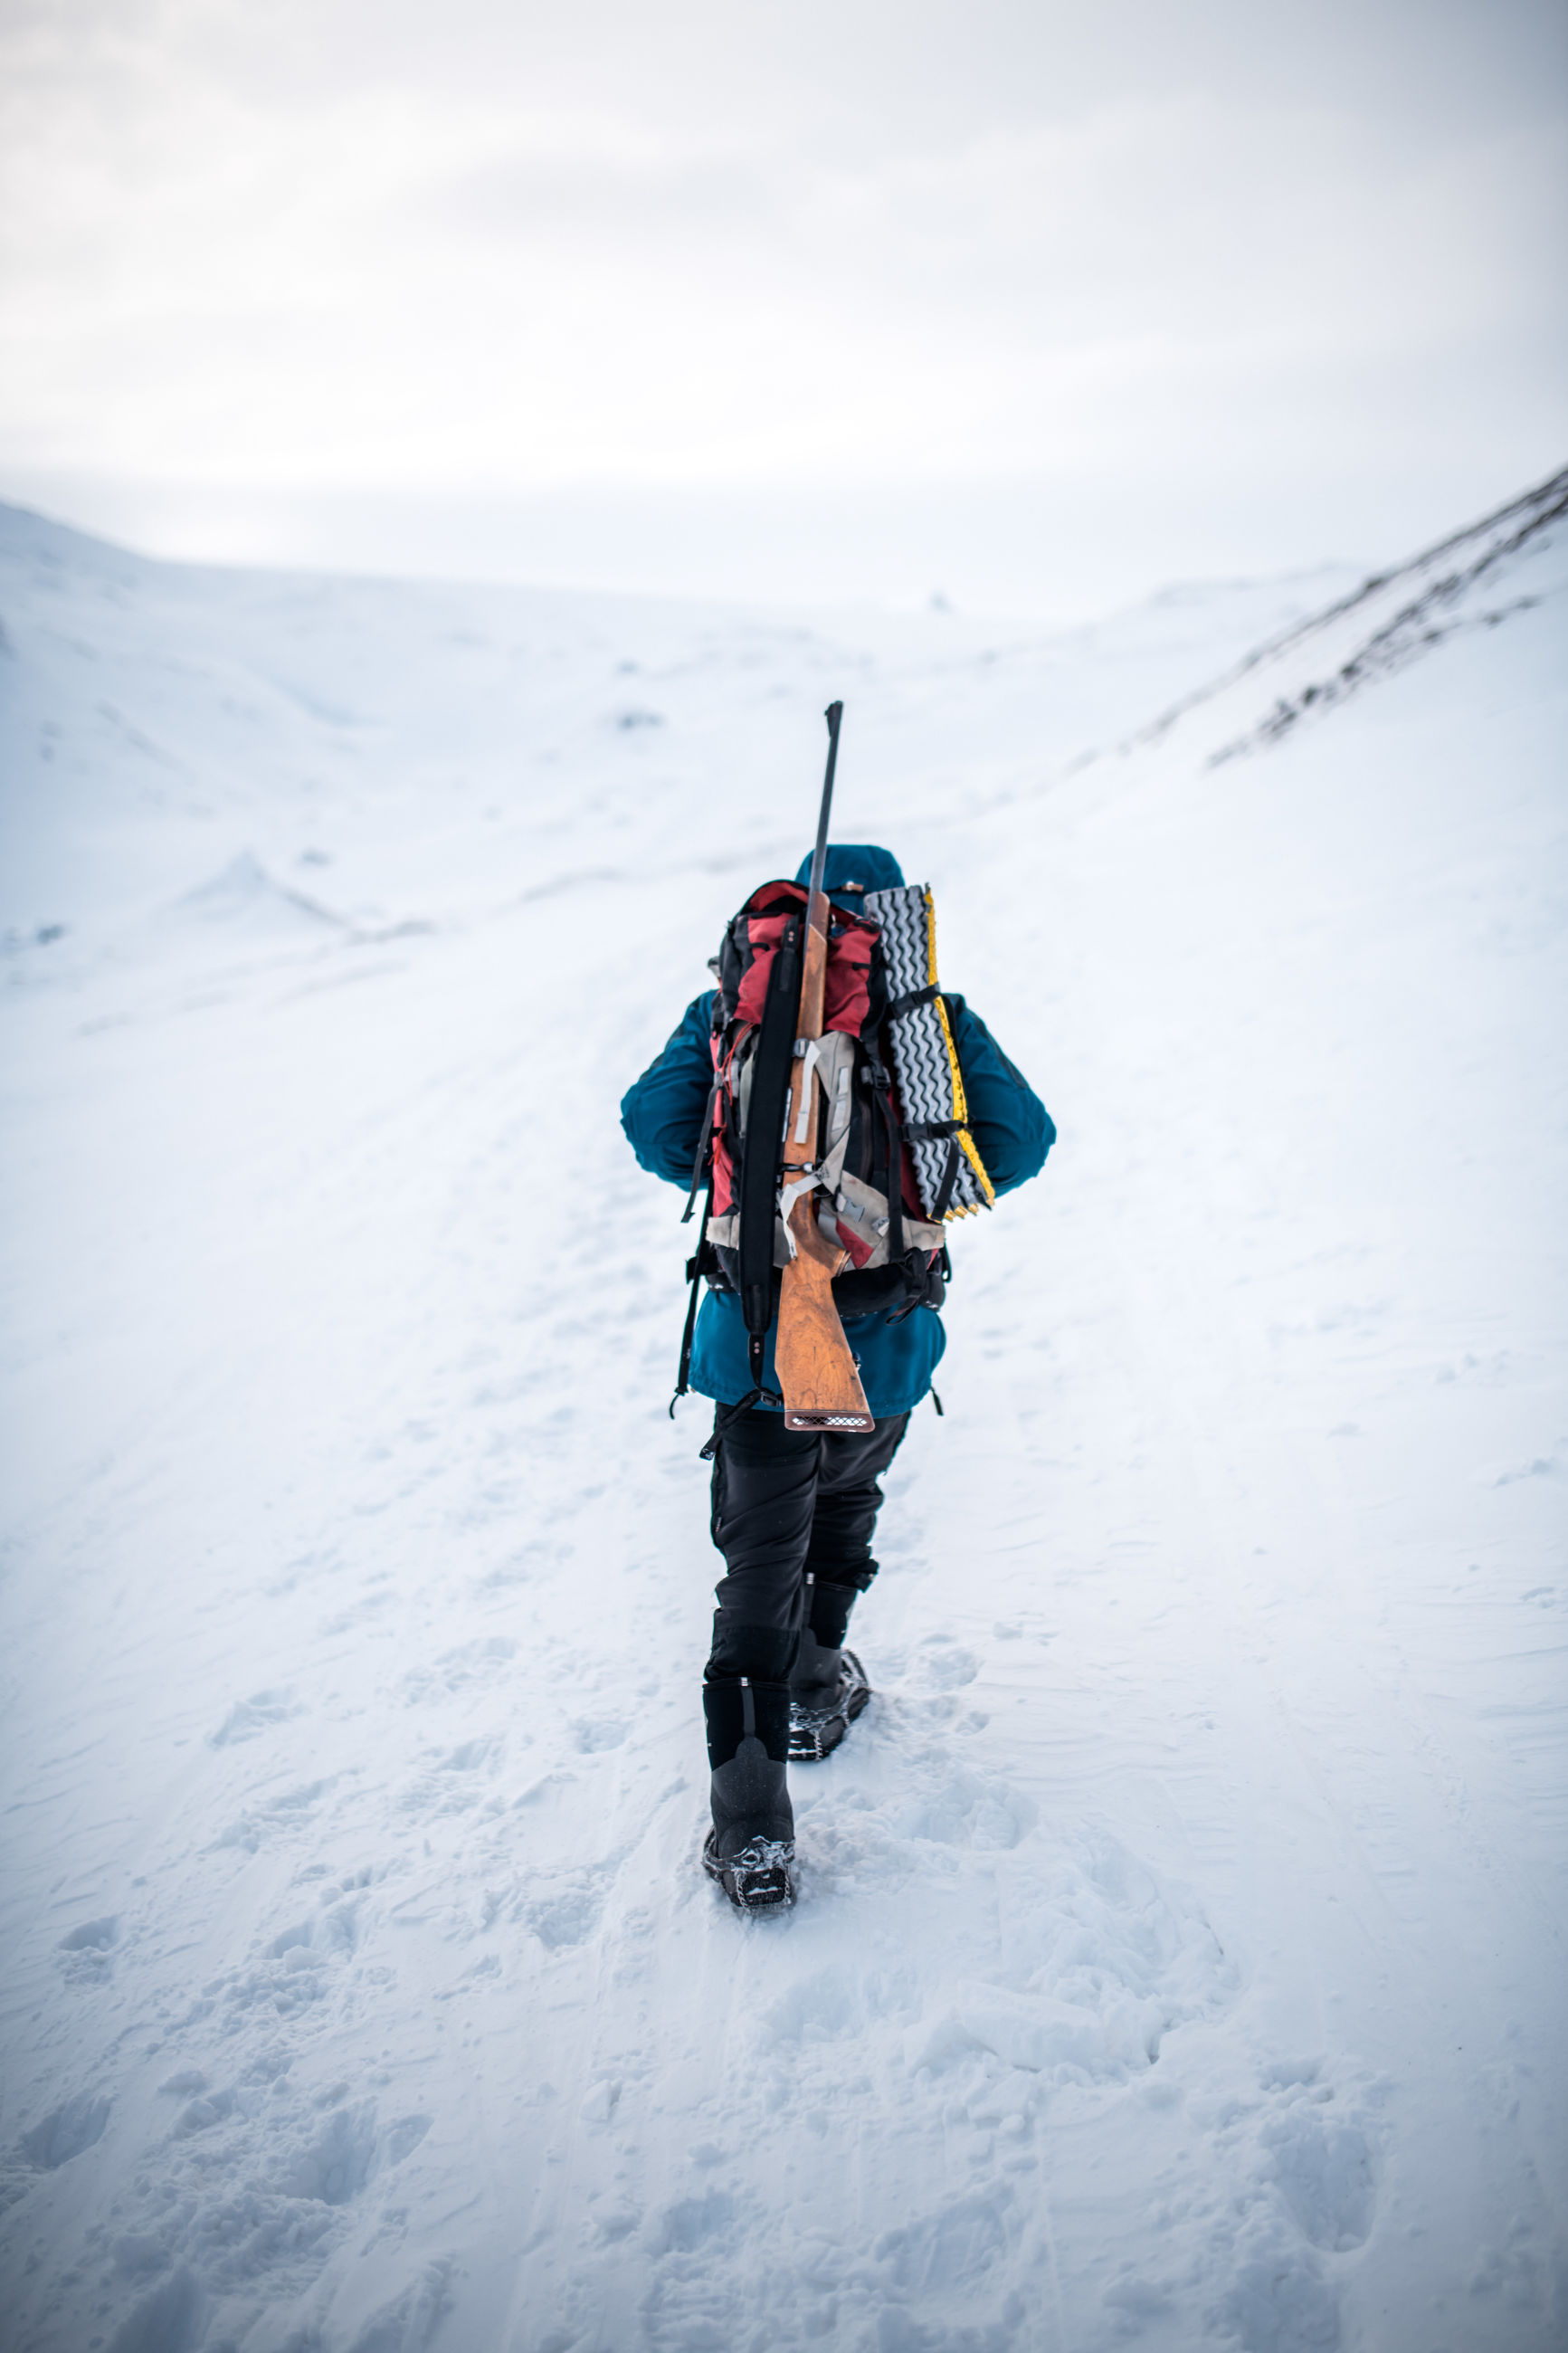 snow, winter, leisure activity, cold temperature, lifestyles, adventure, real people, full length, nature, one person, day, warm clothing, clothing, sport, mountain, beauty in nature, hiking, rear view, outdoors, extreme weather